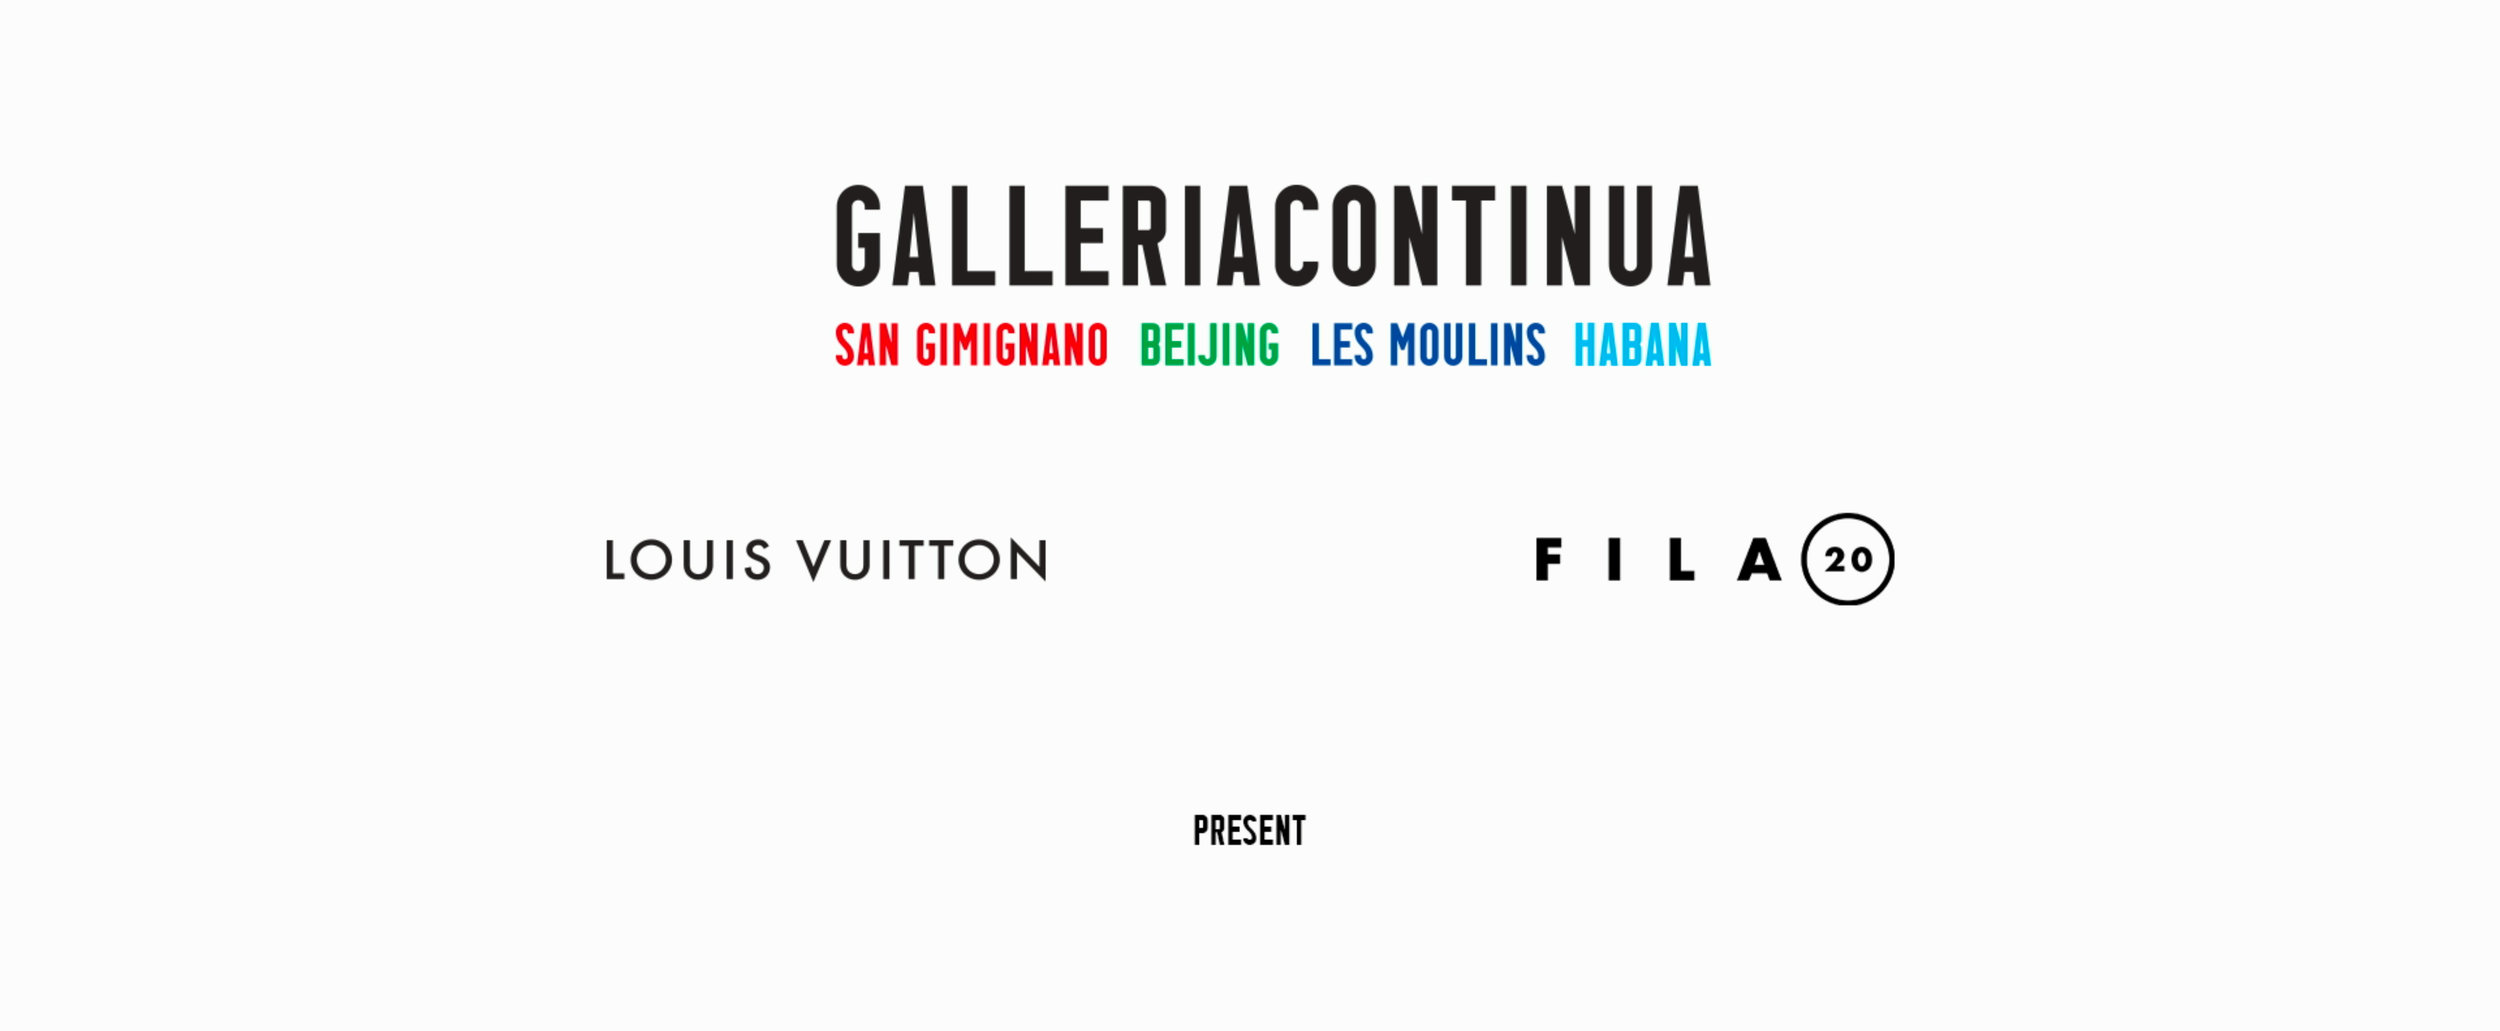 Clients  Galleria Continua - Louis Vuitton  commissioned several projects to FILA20. You can also take a look at our documentary   Galleria Continua at the 12th Havana Biennial  .